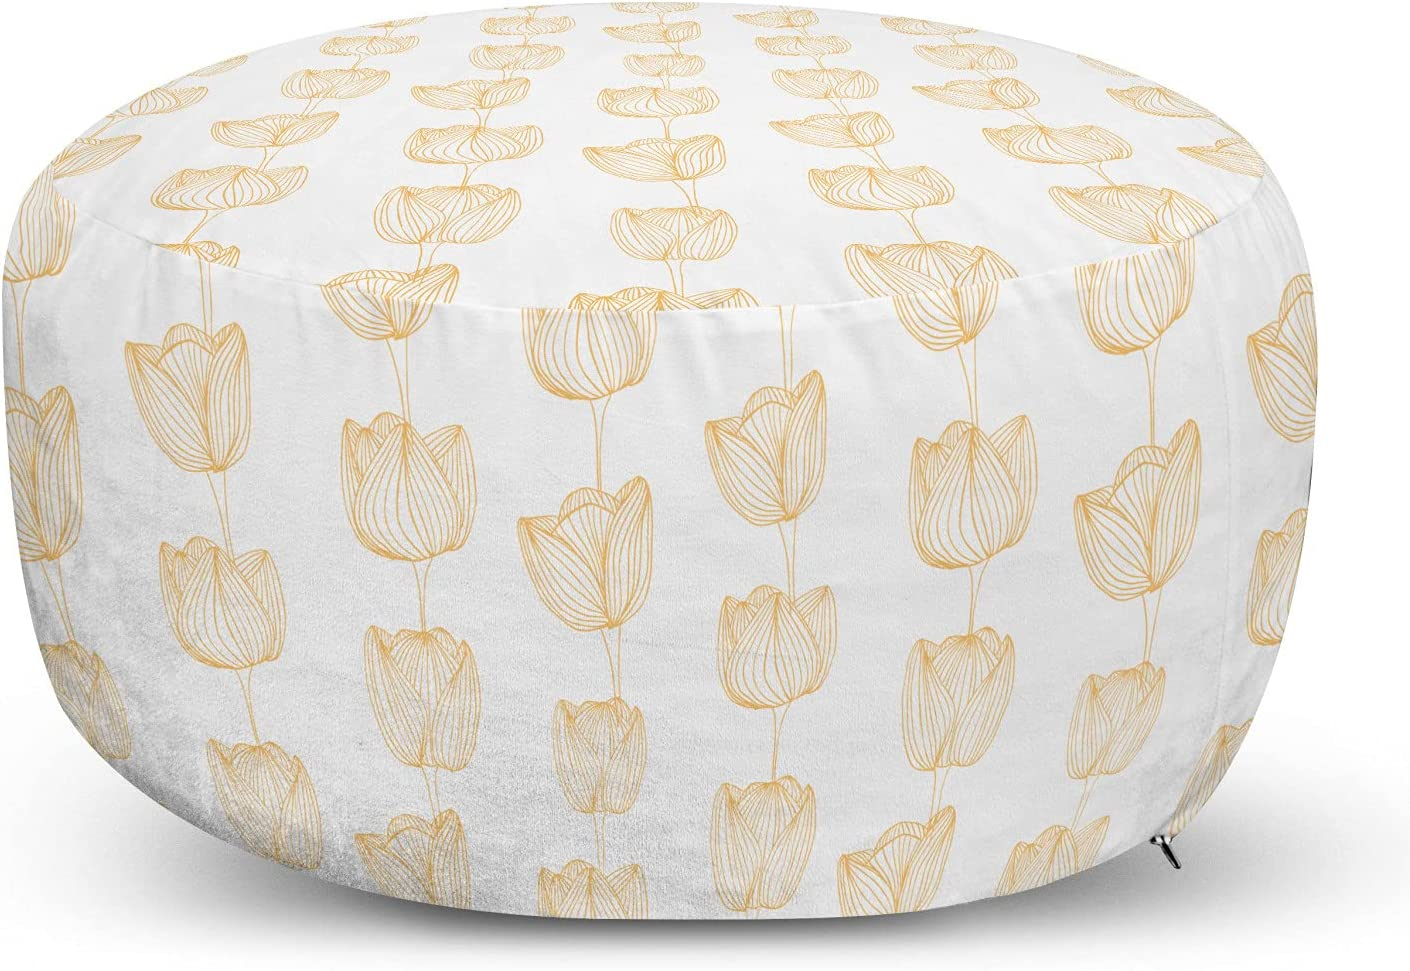 Very popular! Ambesonne Floral Ottoman Luxury goods Pouf Hand Bouquets Drawn Look Tulip Sh